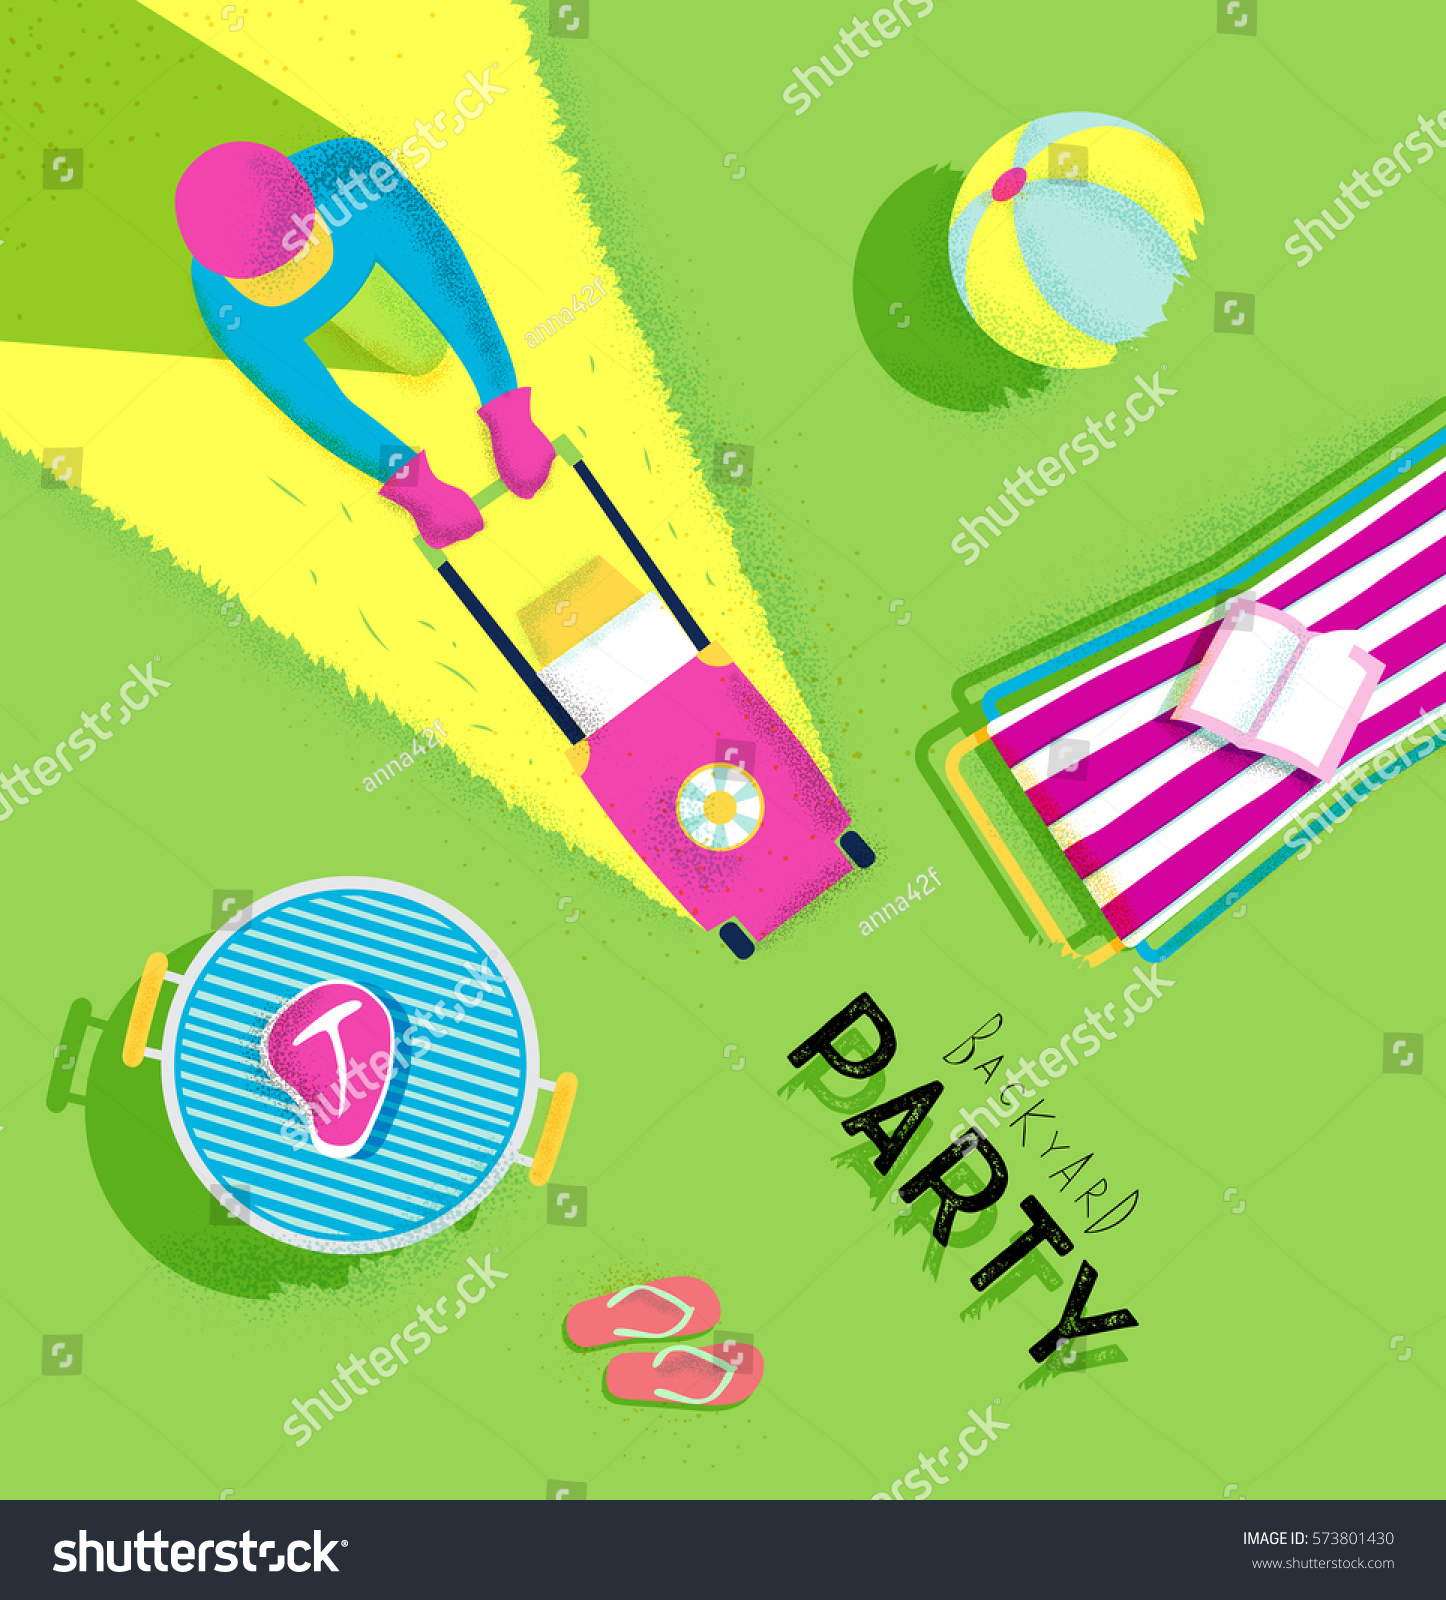 Backyard Party Poster With Lawnmower Man Deck Chair Bbq Grill Beach Ball